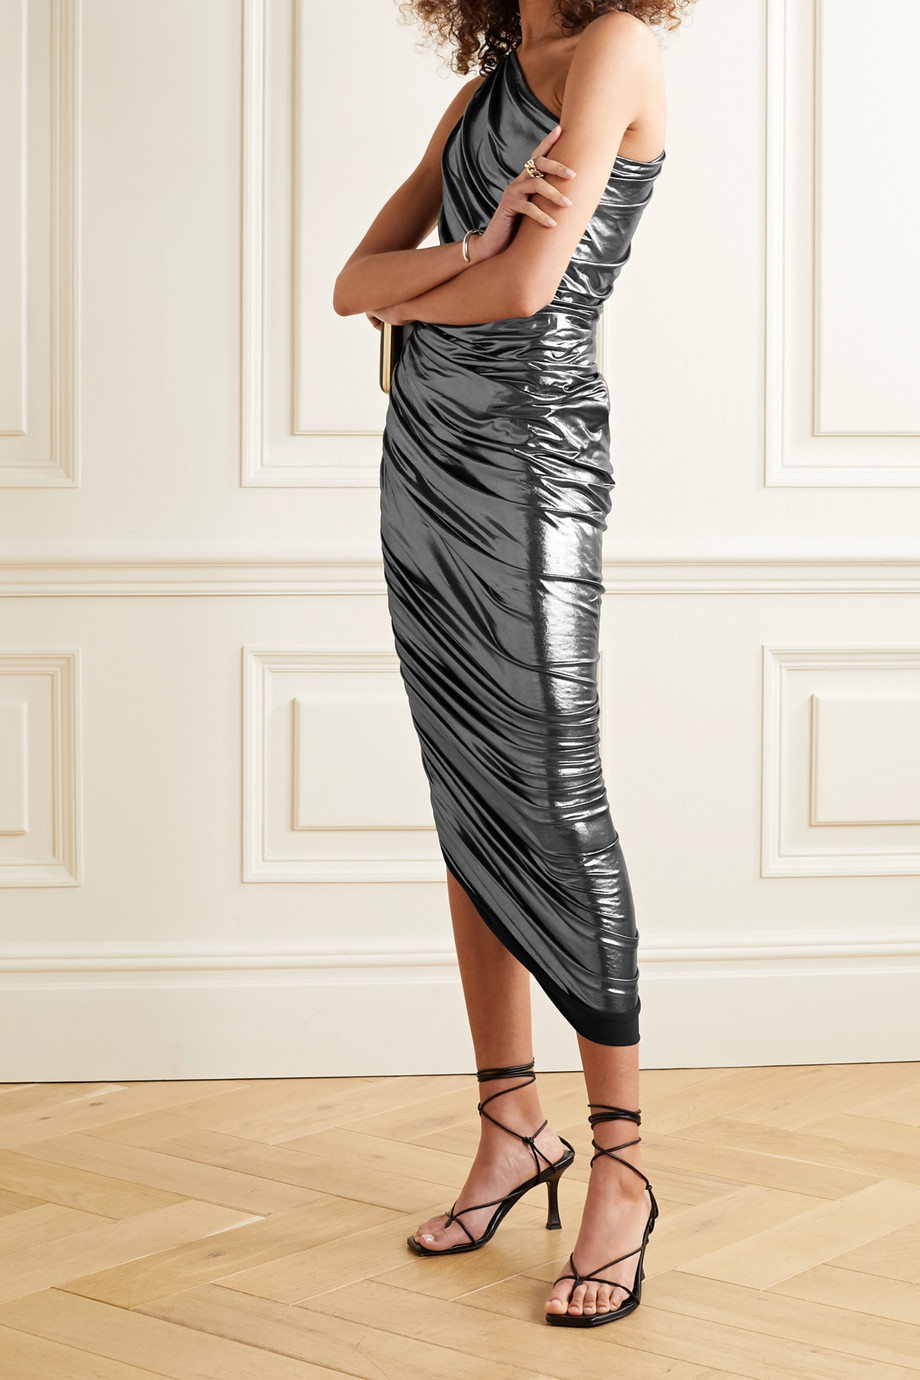 Norma Kamali Diana one-shoulder ruched metallic stretch-jersey dress